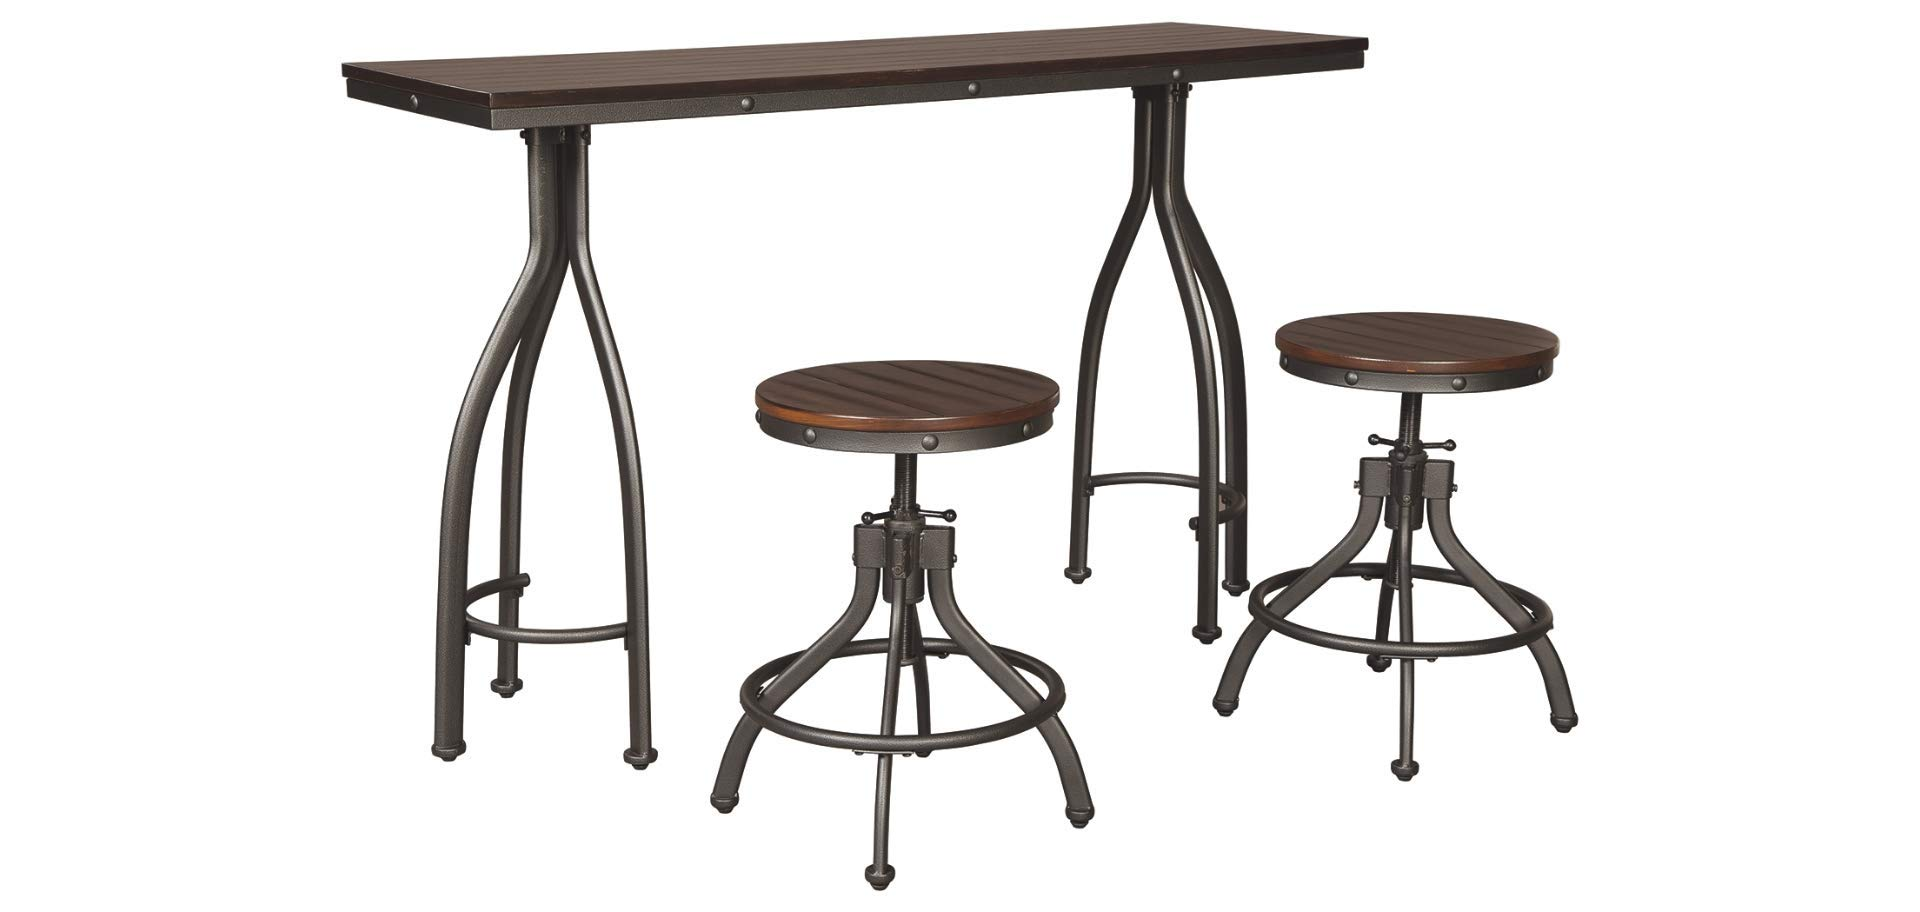 Signature Design by Ashley Odium Dining Table, 3pc by Signature Design by Ashley